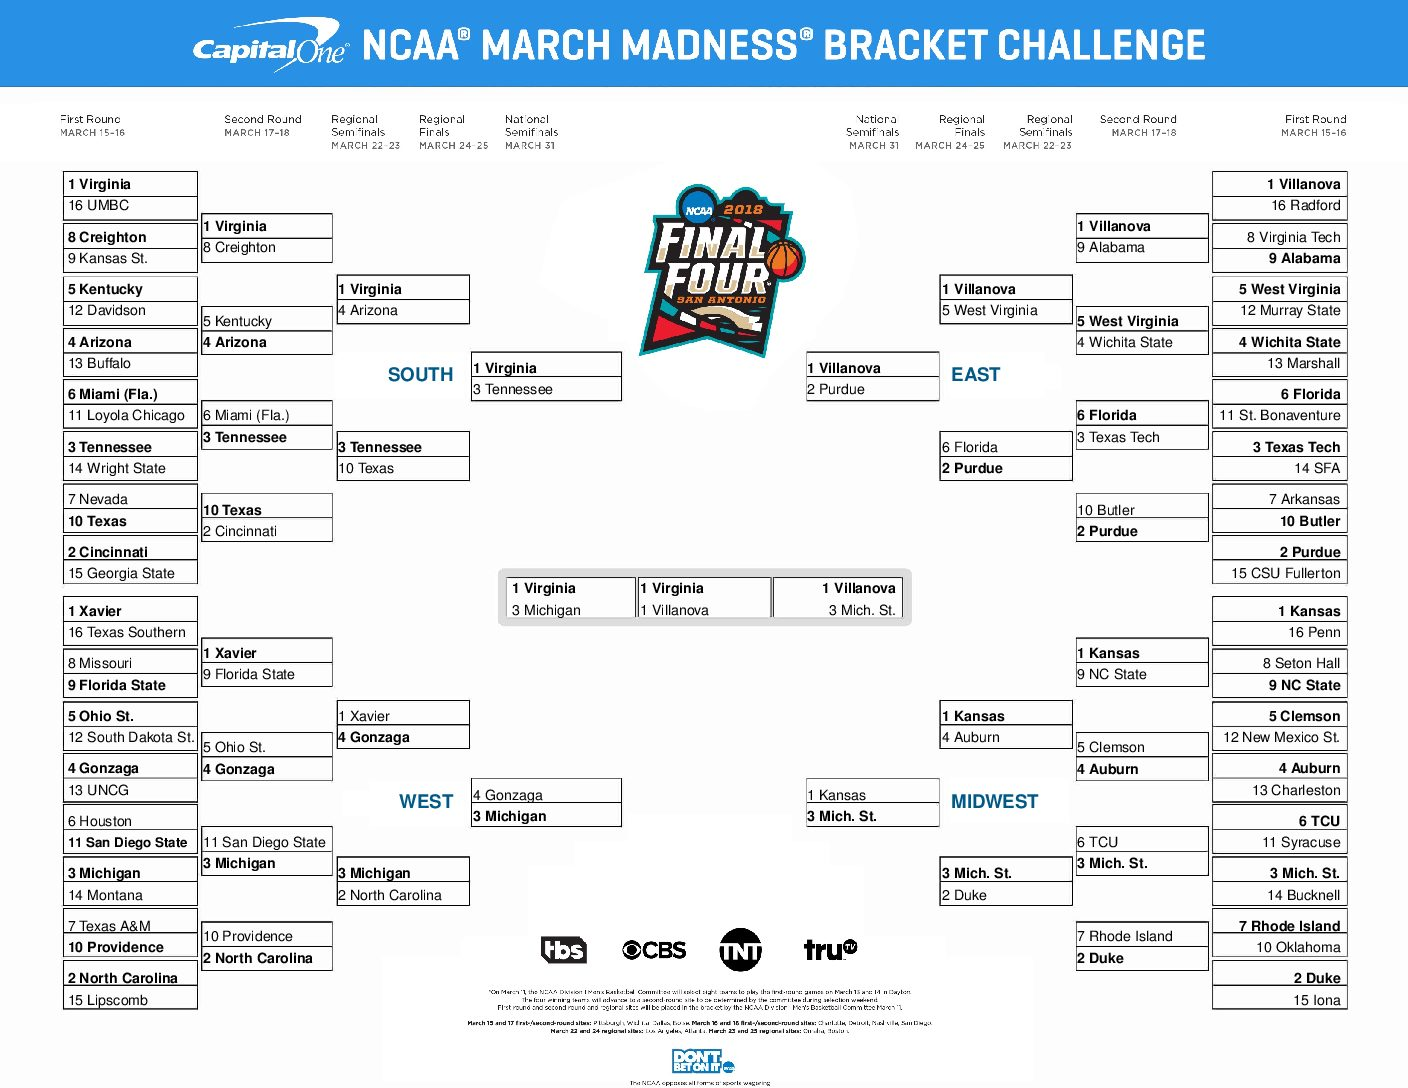 When It's March, It's Madness